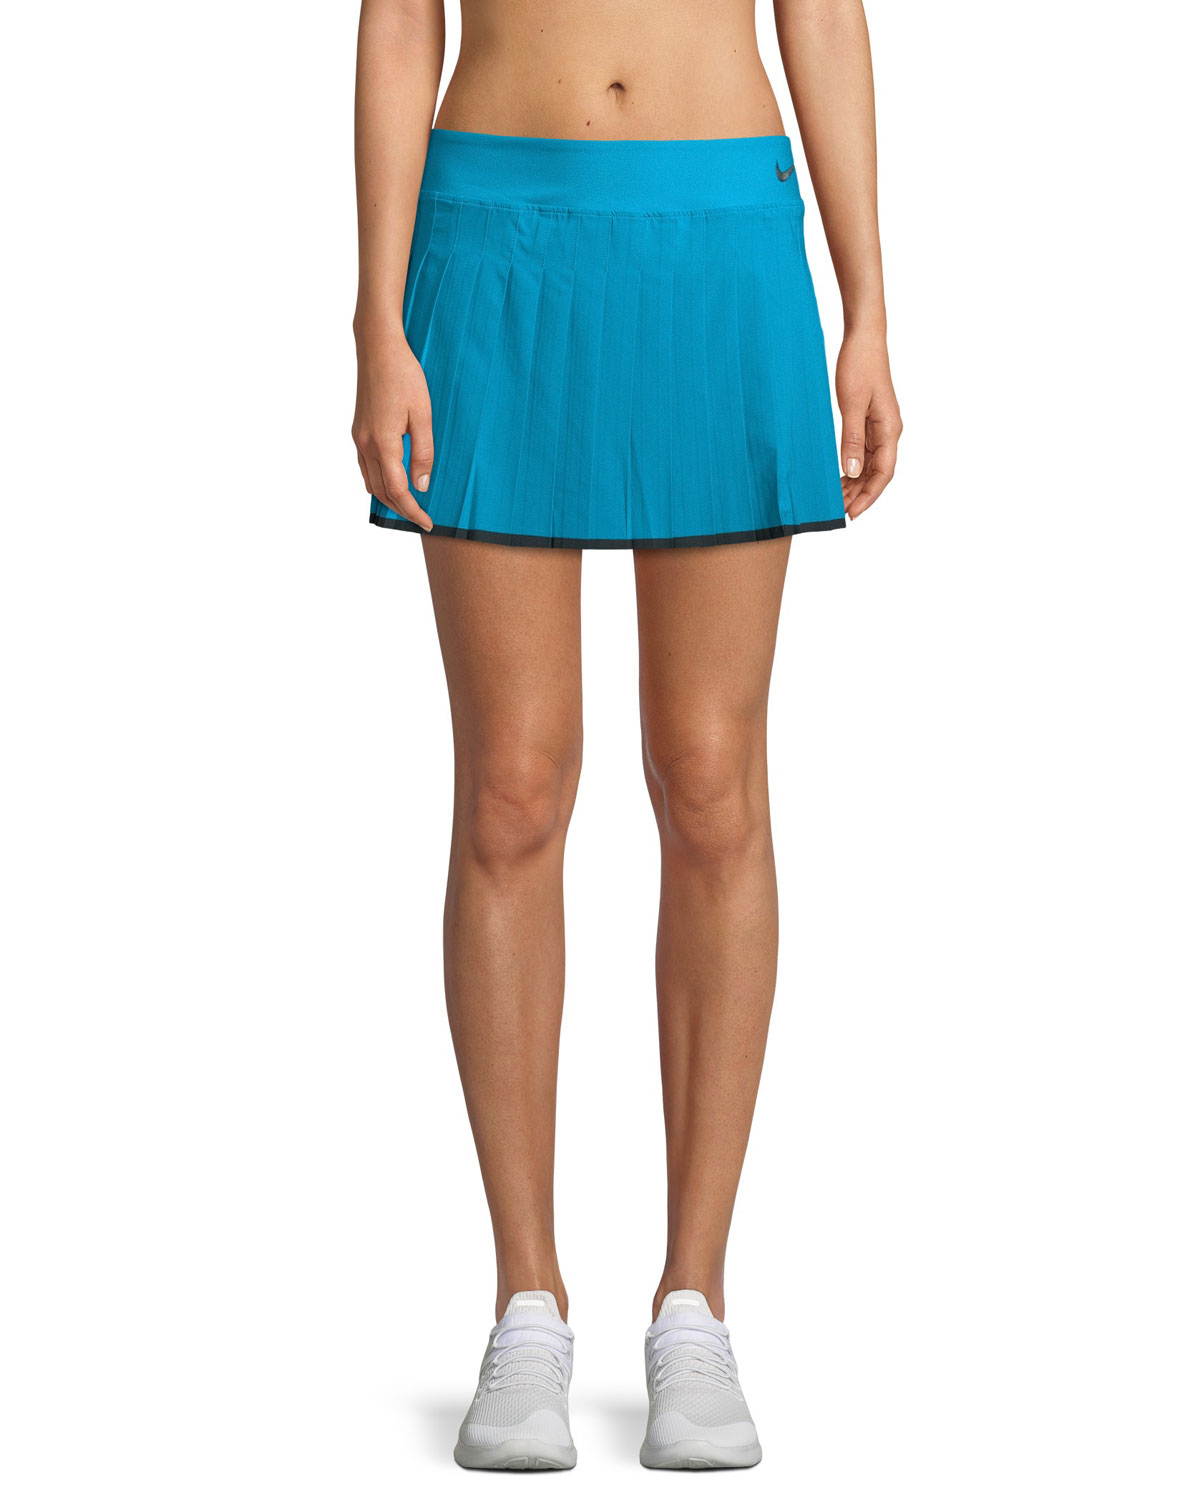 7a748375d5 Nike Victory Pleated Tennis Skirt   Neiman Marcus